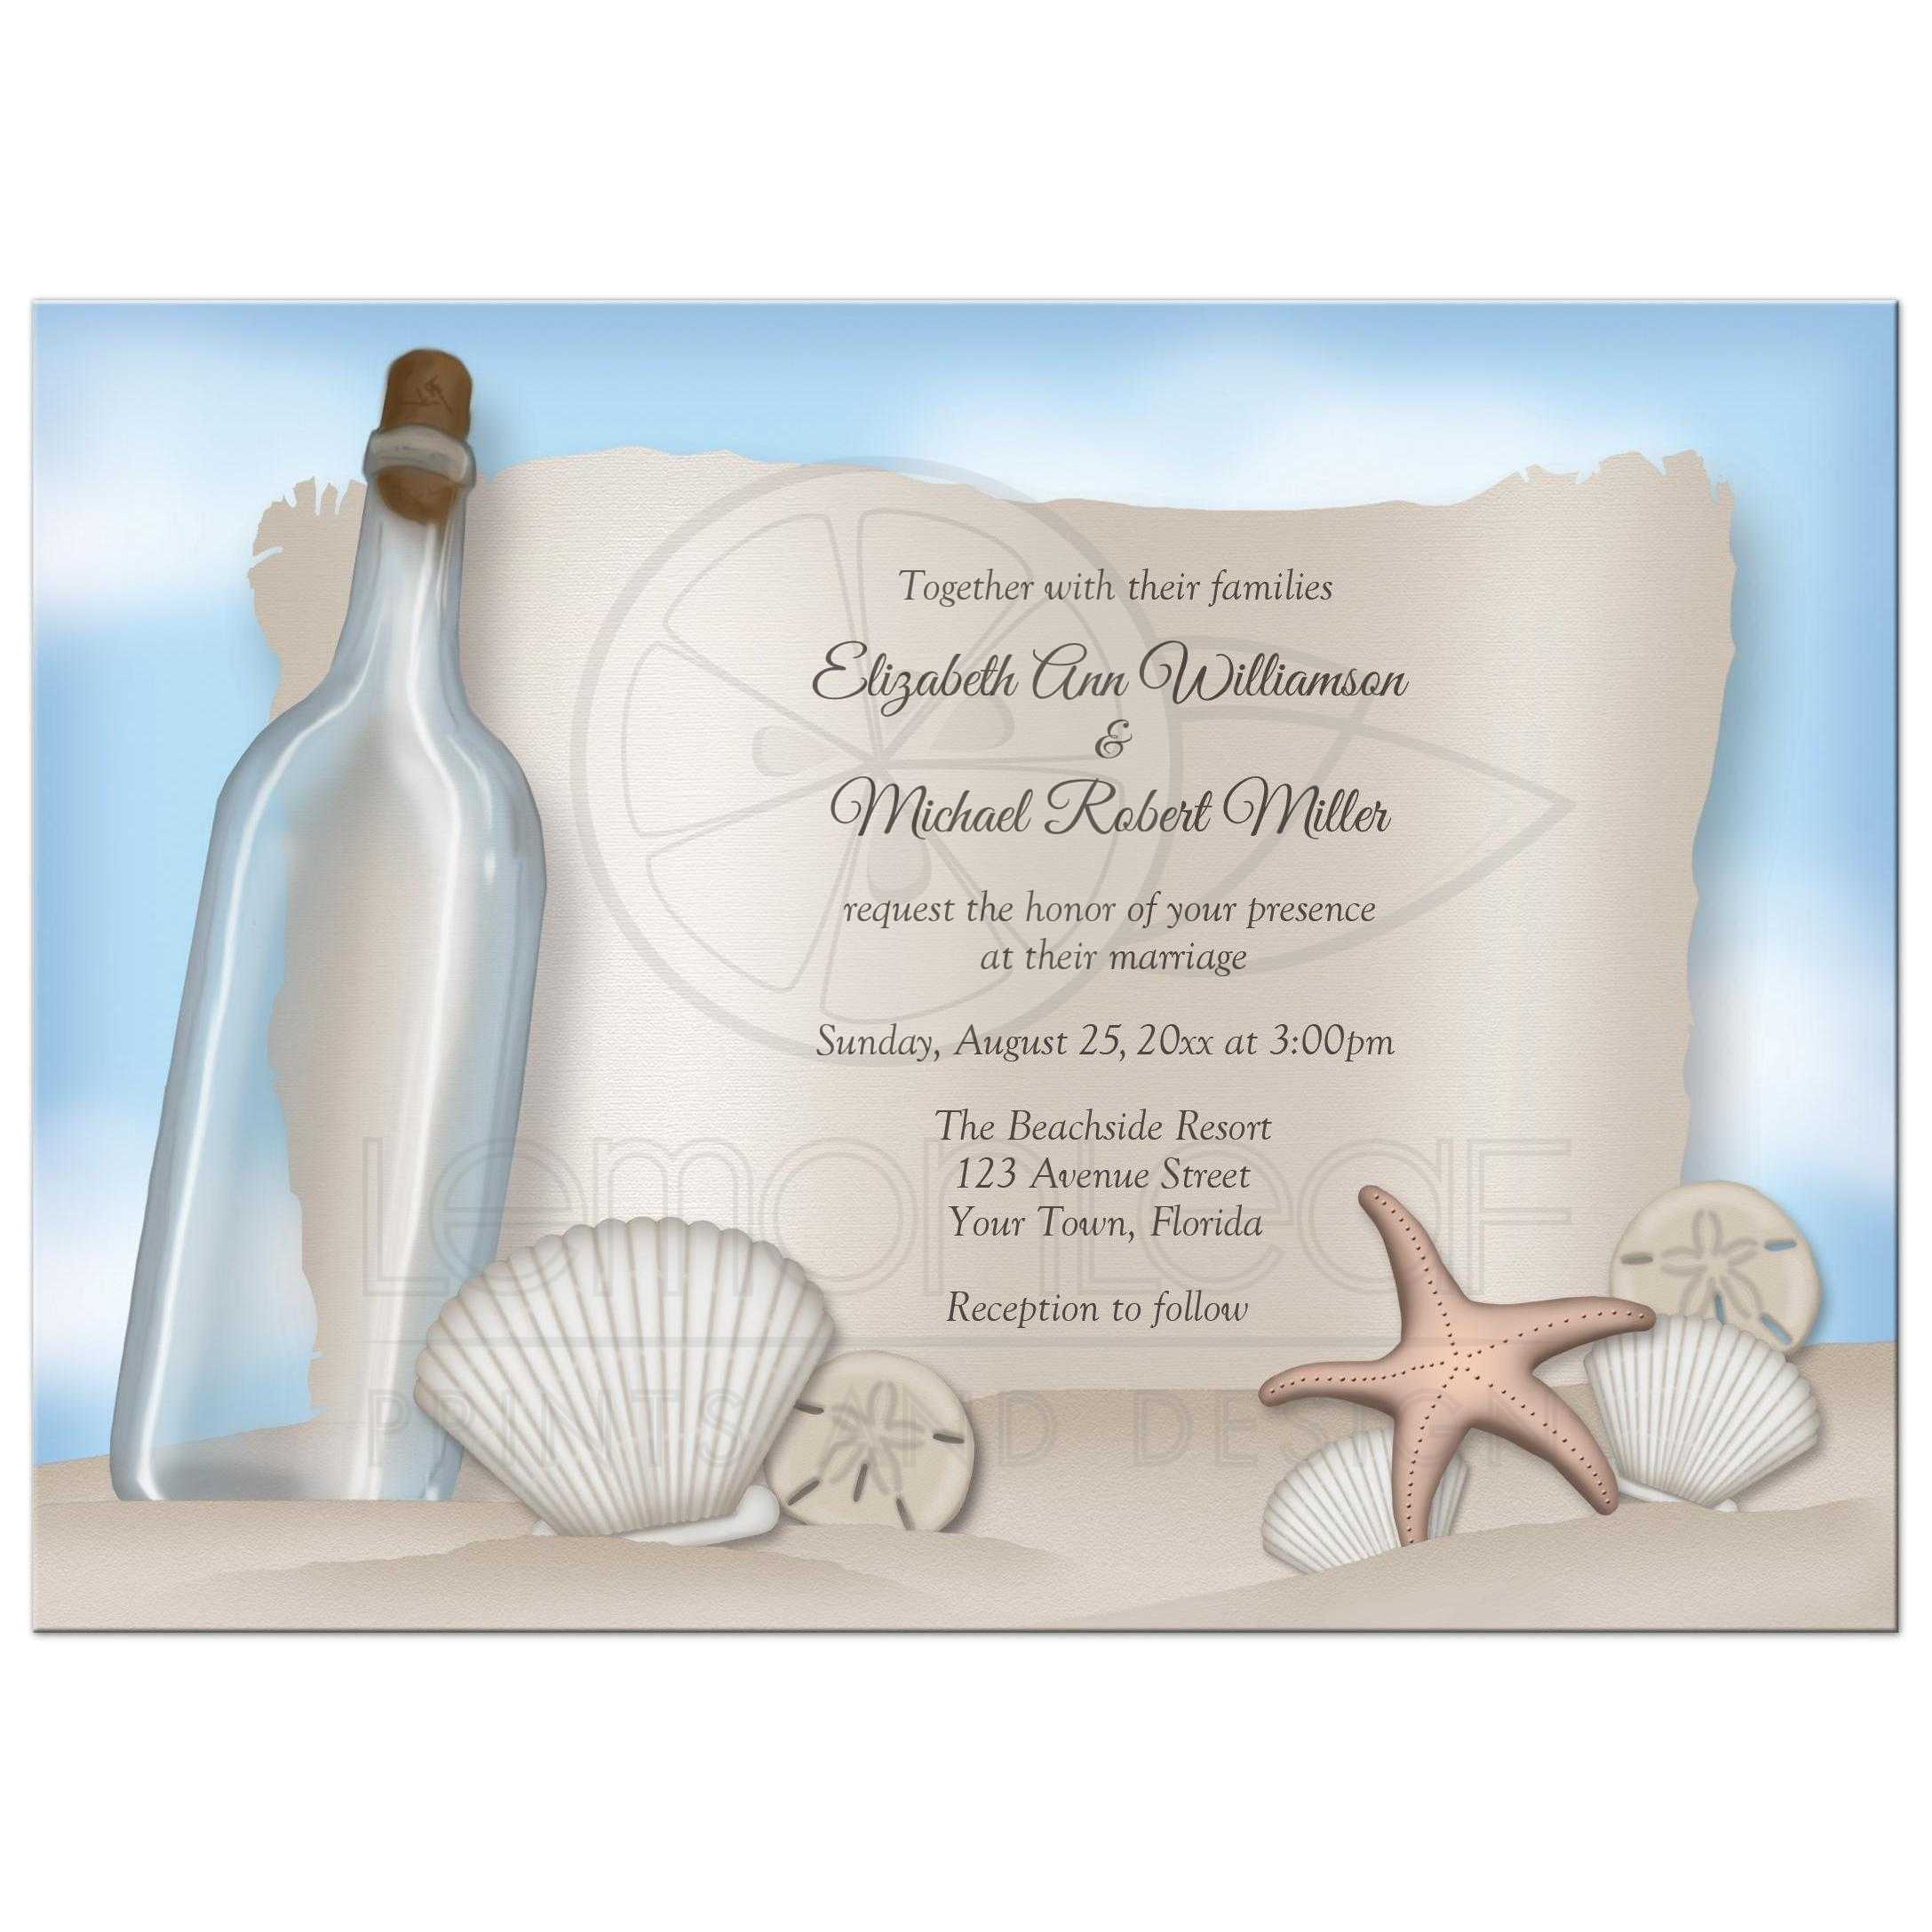 Message In A Bottle Wedding Invitations: Beach Message From A Bottle